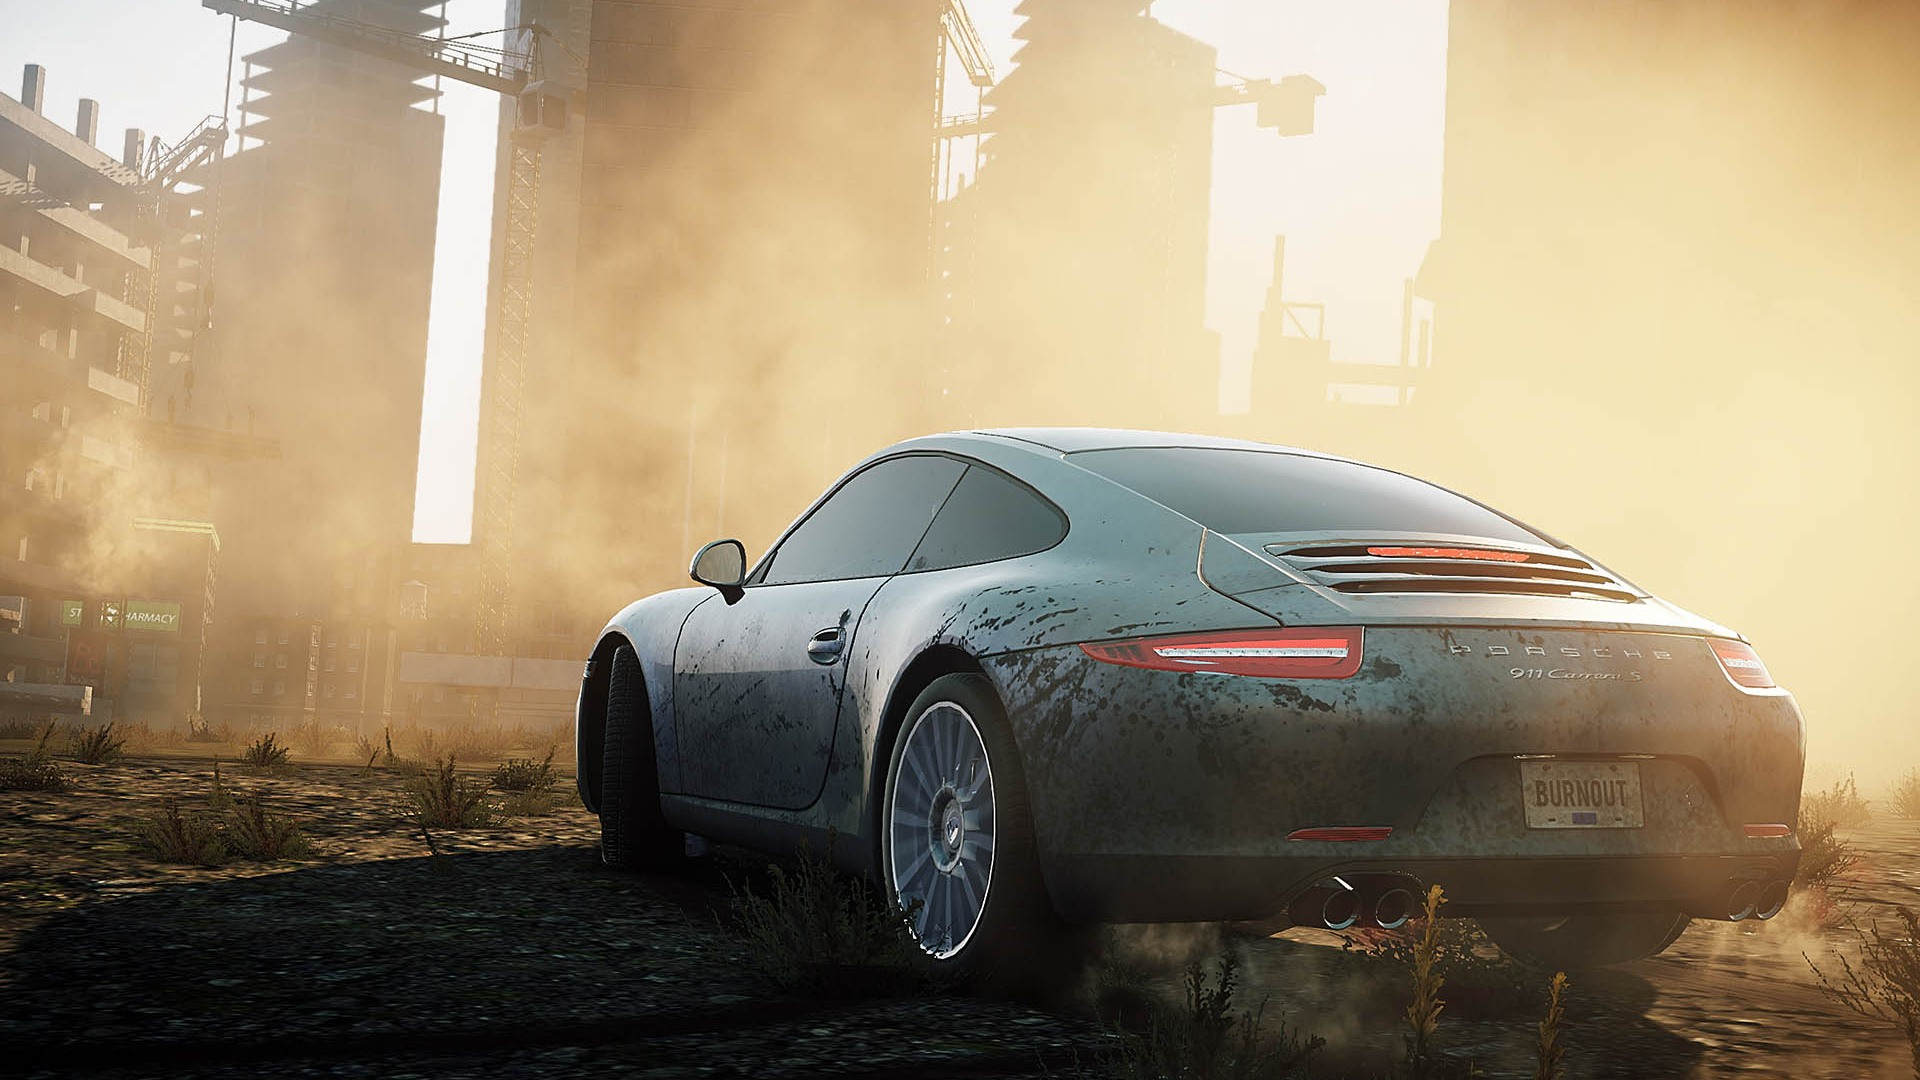 need for speed: most wanted hd wallpapers #14 - 1920x1080 wallpaper